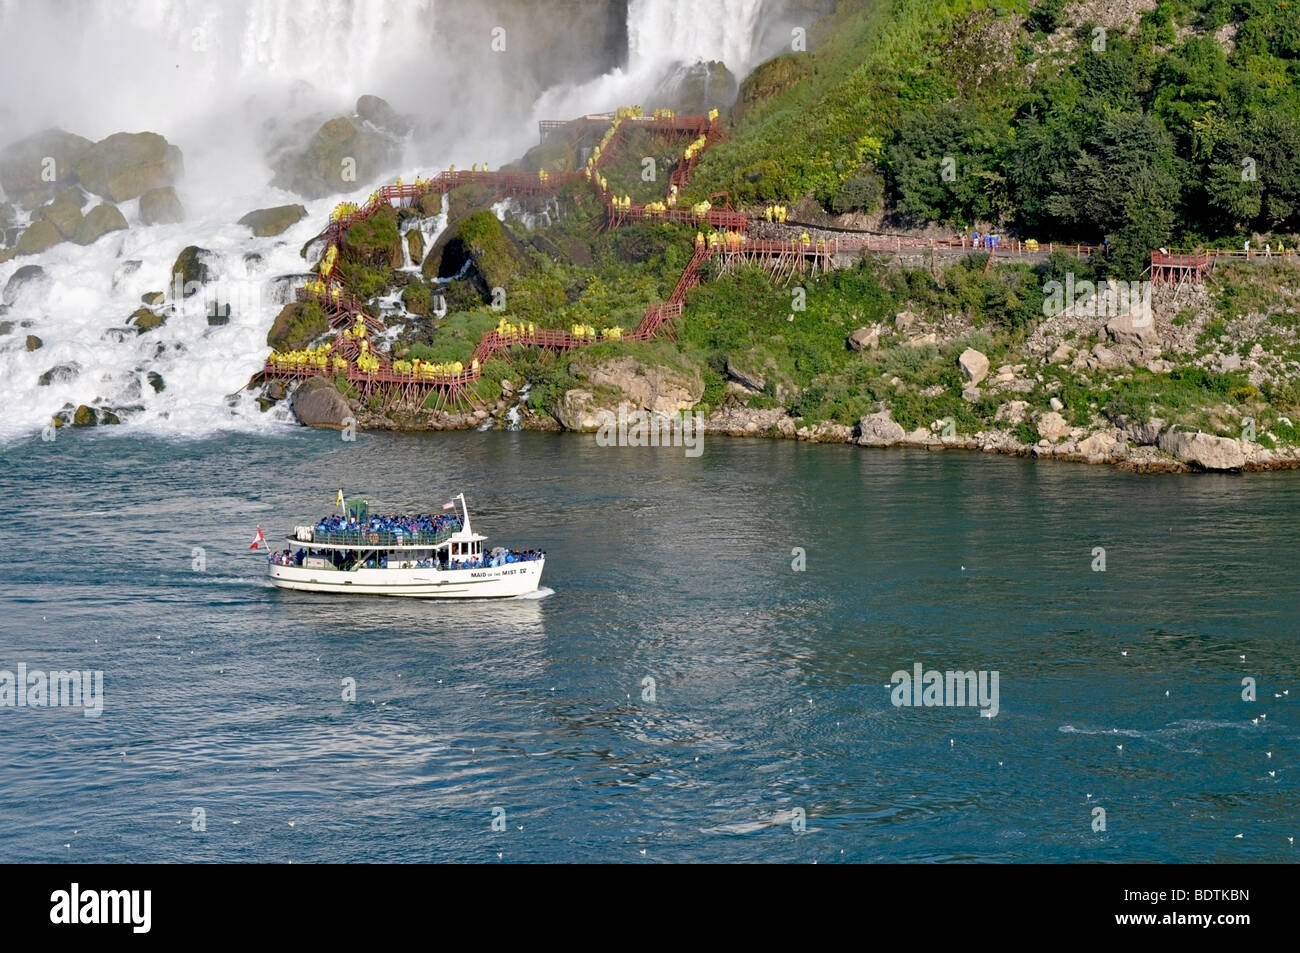 Maid of the Mist boat with tourists, Niagara Falls, Canada - Stock Image